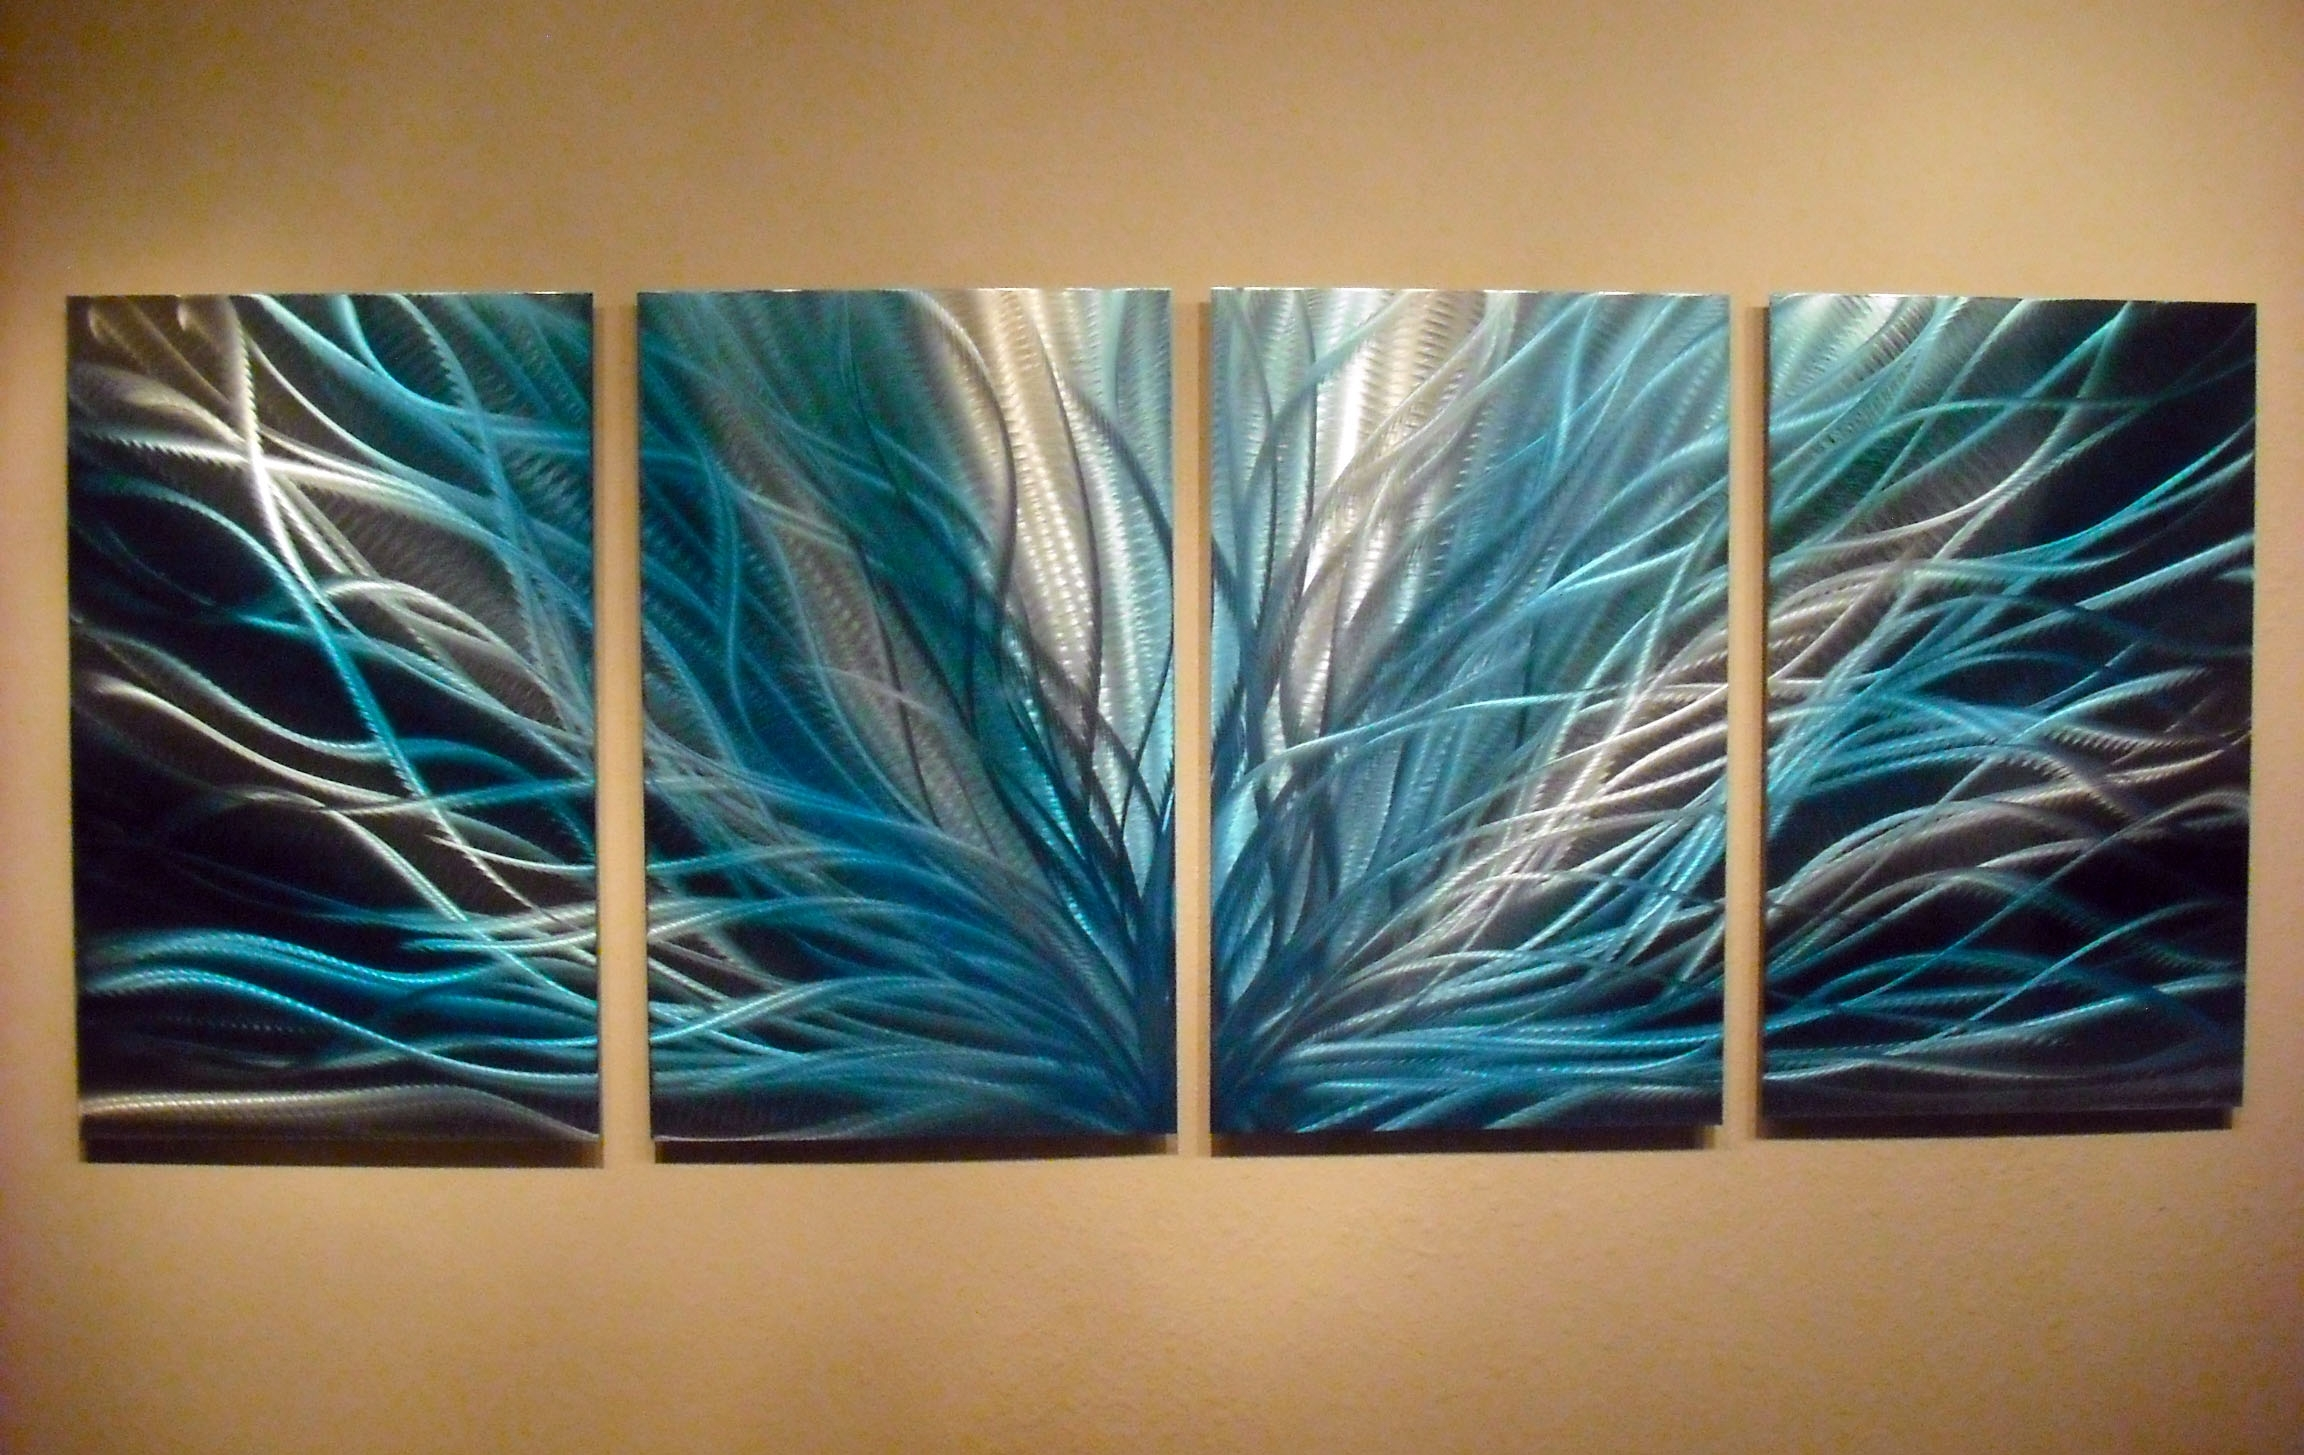 Radiance In Blues  Abstract Metal Wall Art Contemporary Modern Within Most Up To Date Abstract Metal Wall Art Painting (View 17 of 20)